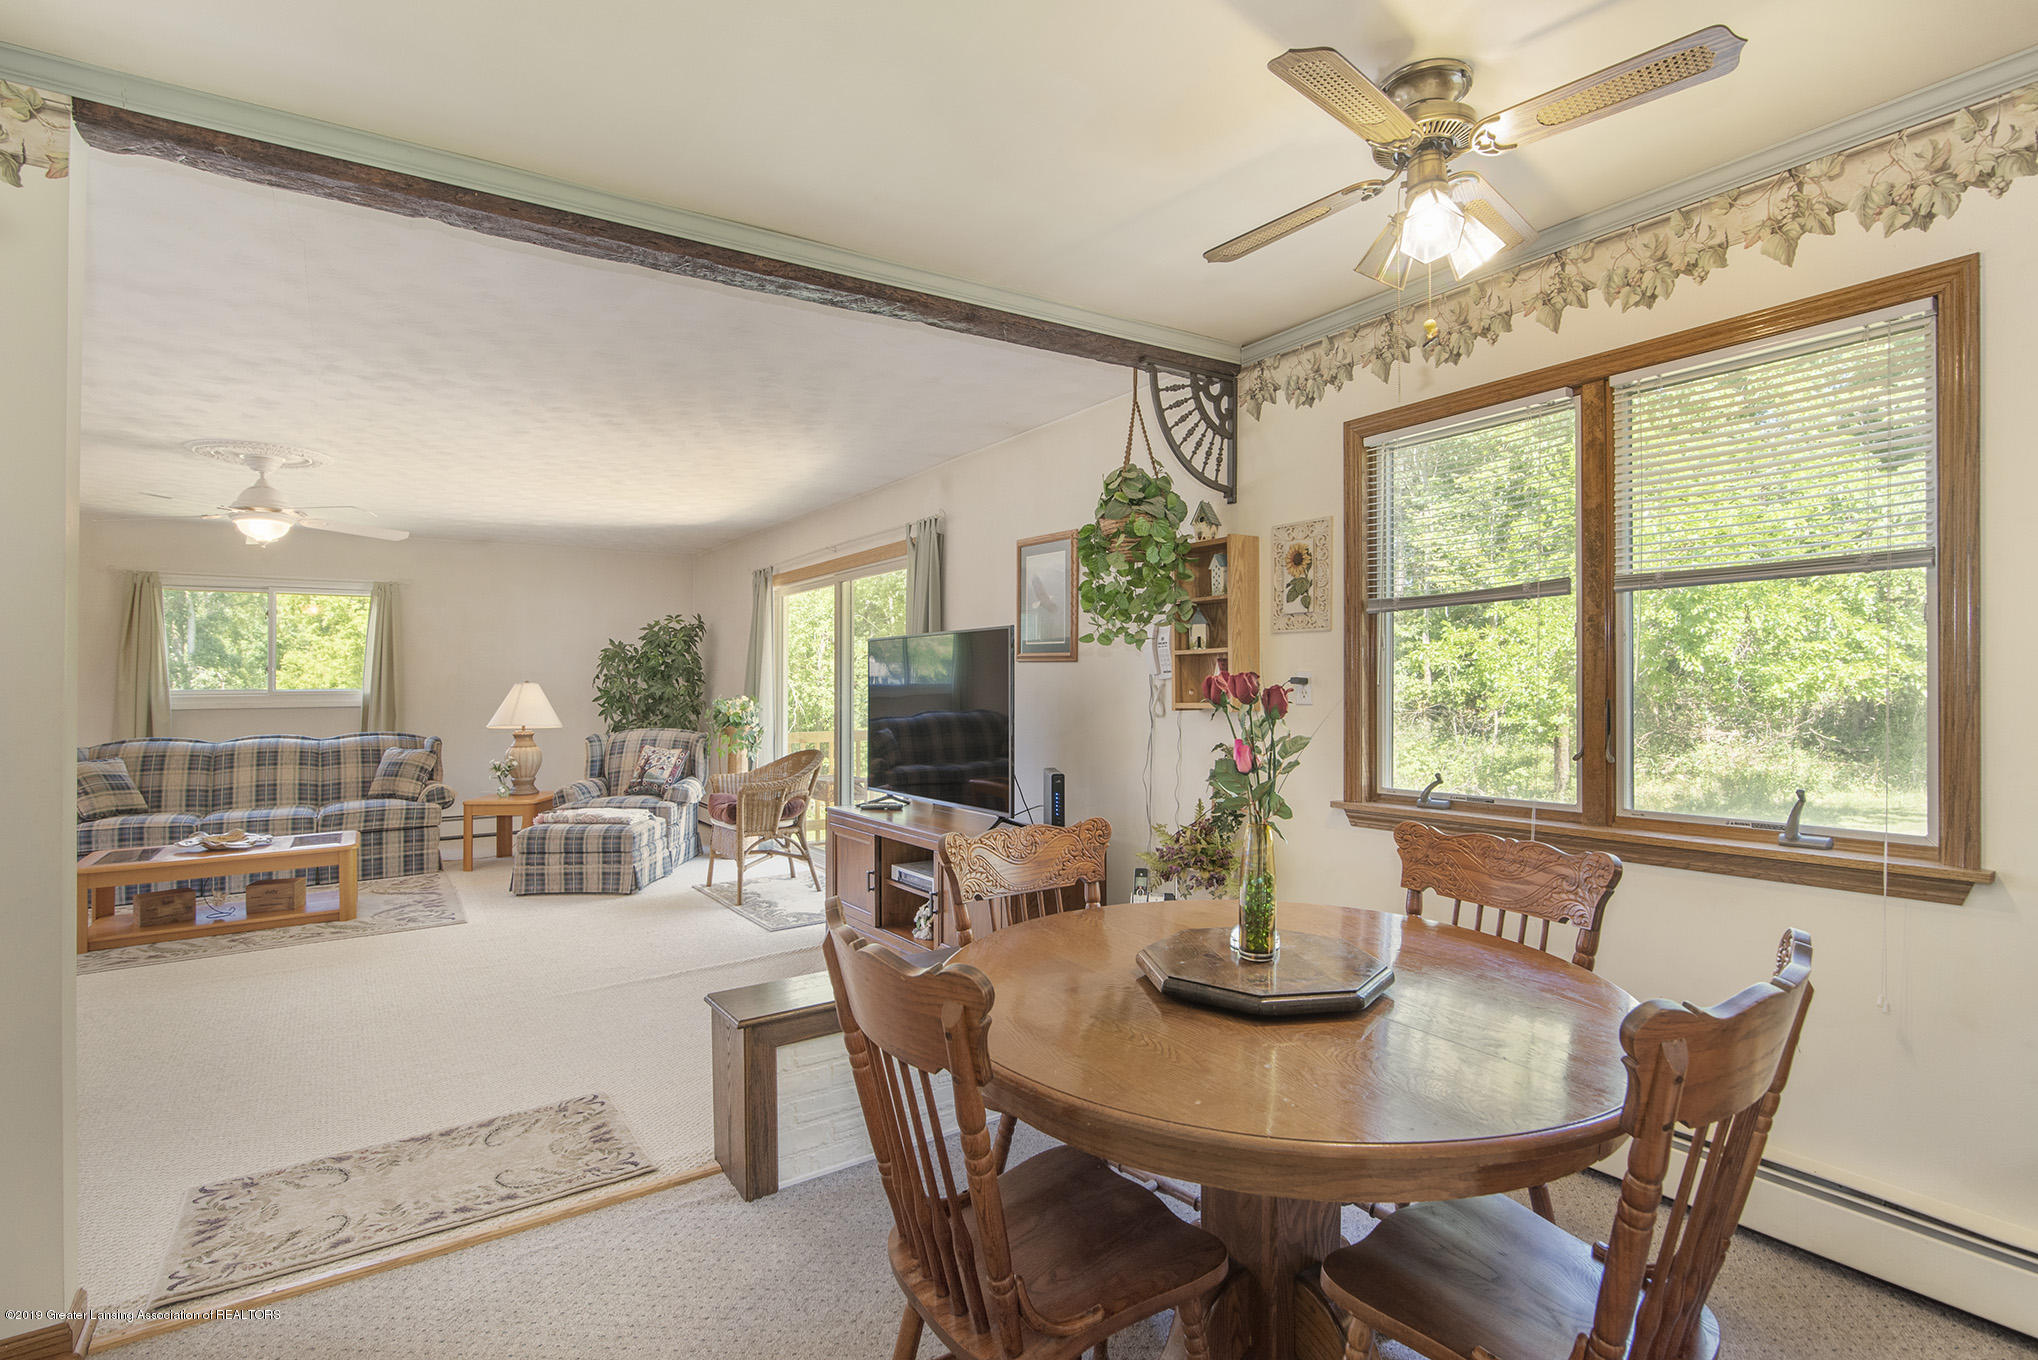 11807 Upton Rd - Breakfast Nook/Family Rooms - 8